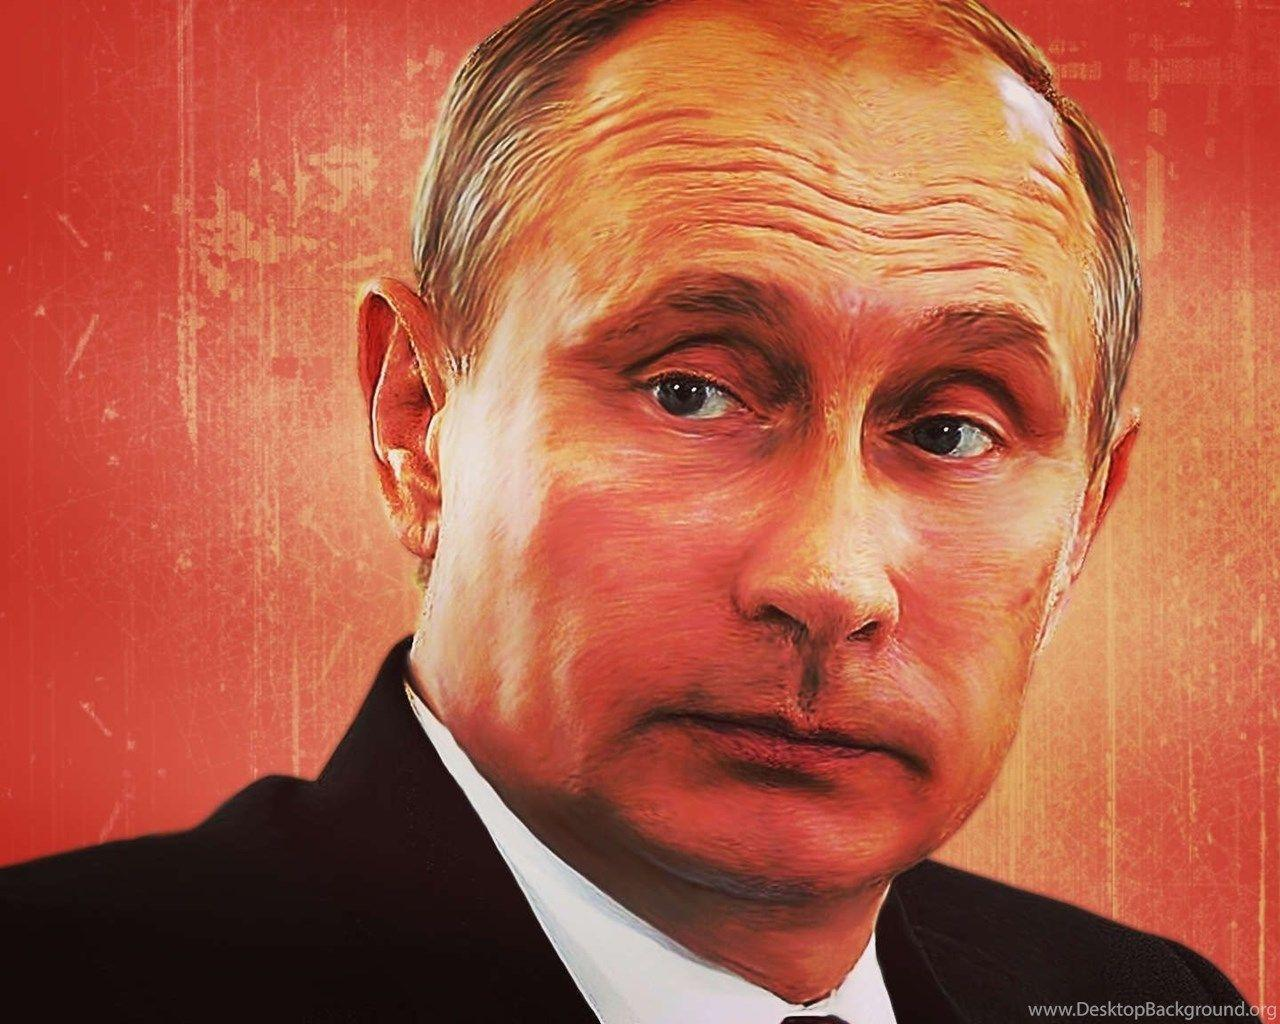 Vladimir Putin Wallpapers Desktop Background